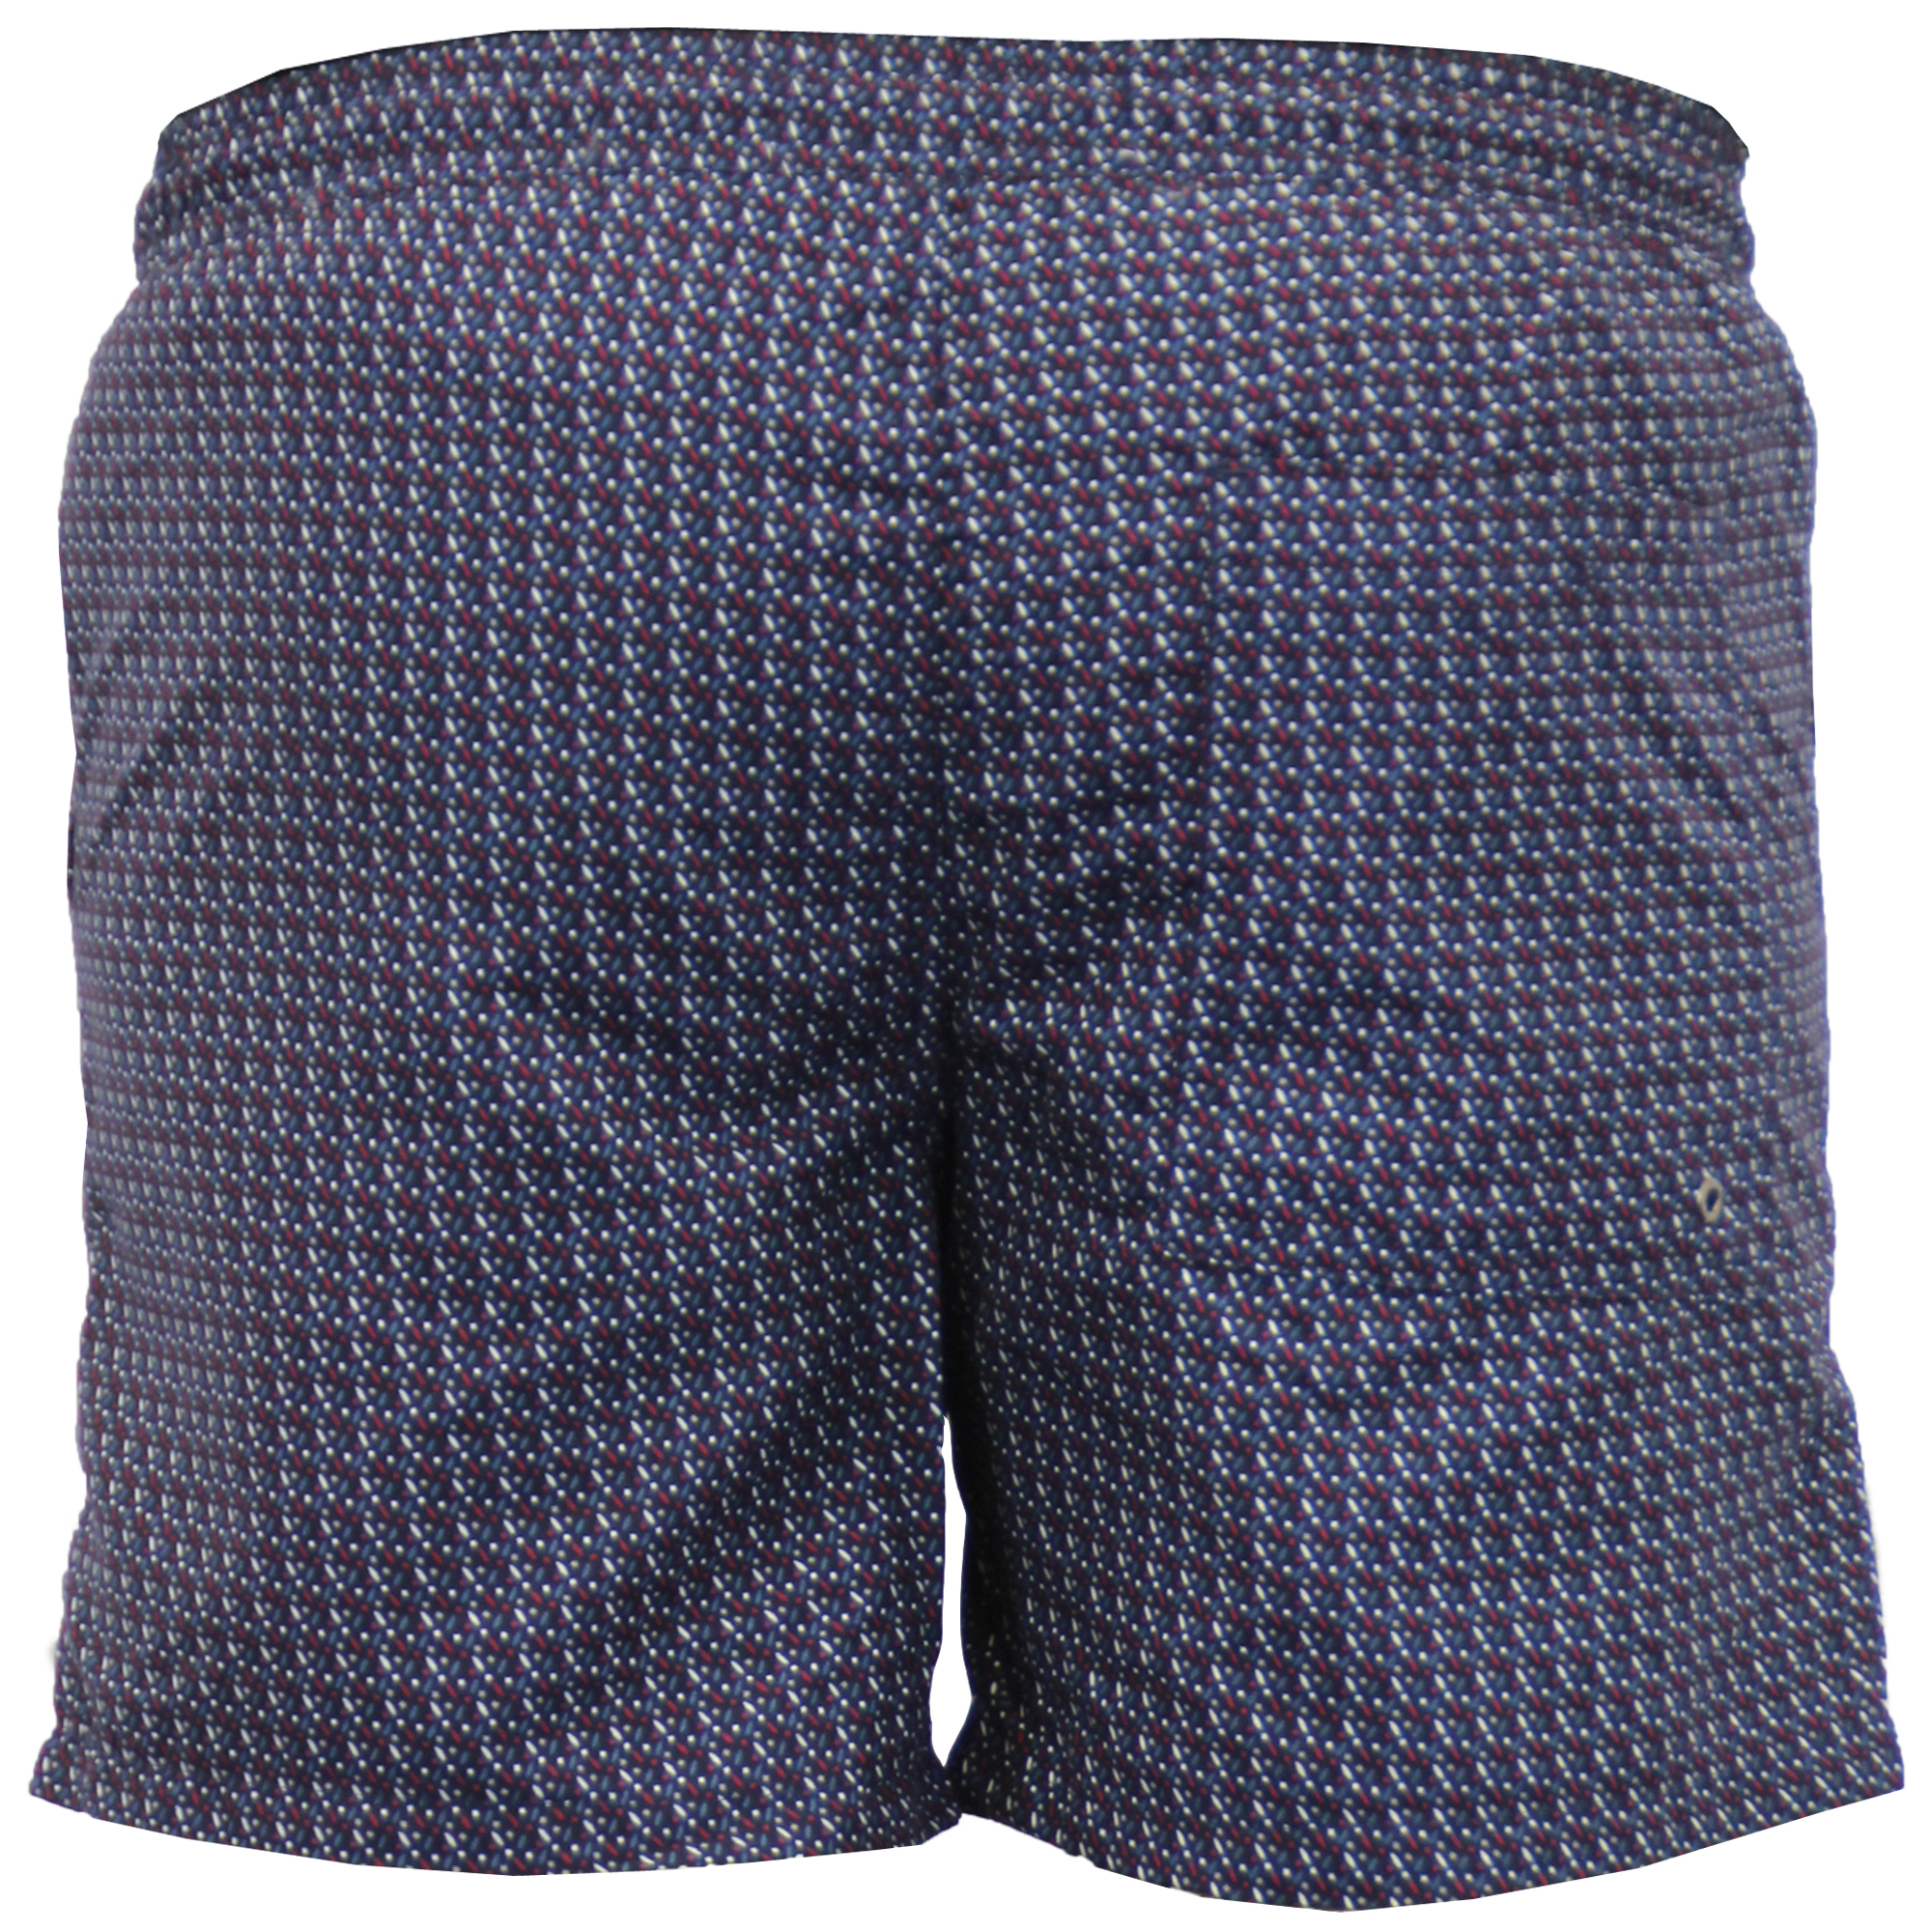 Mens-Swim-Board-Shorts-By-Brave-Soul-Mesh-Lined-New thumbnail 27